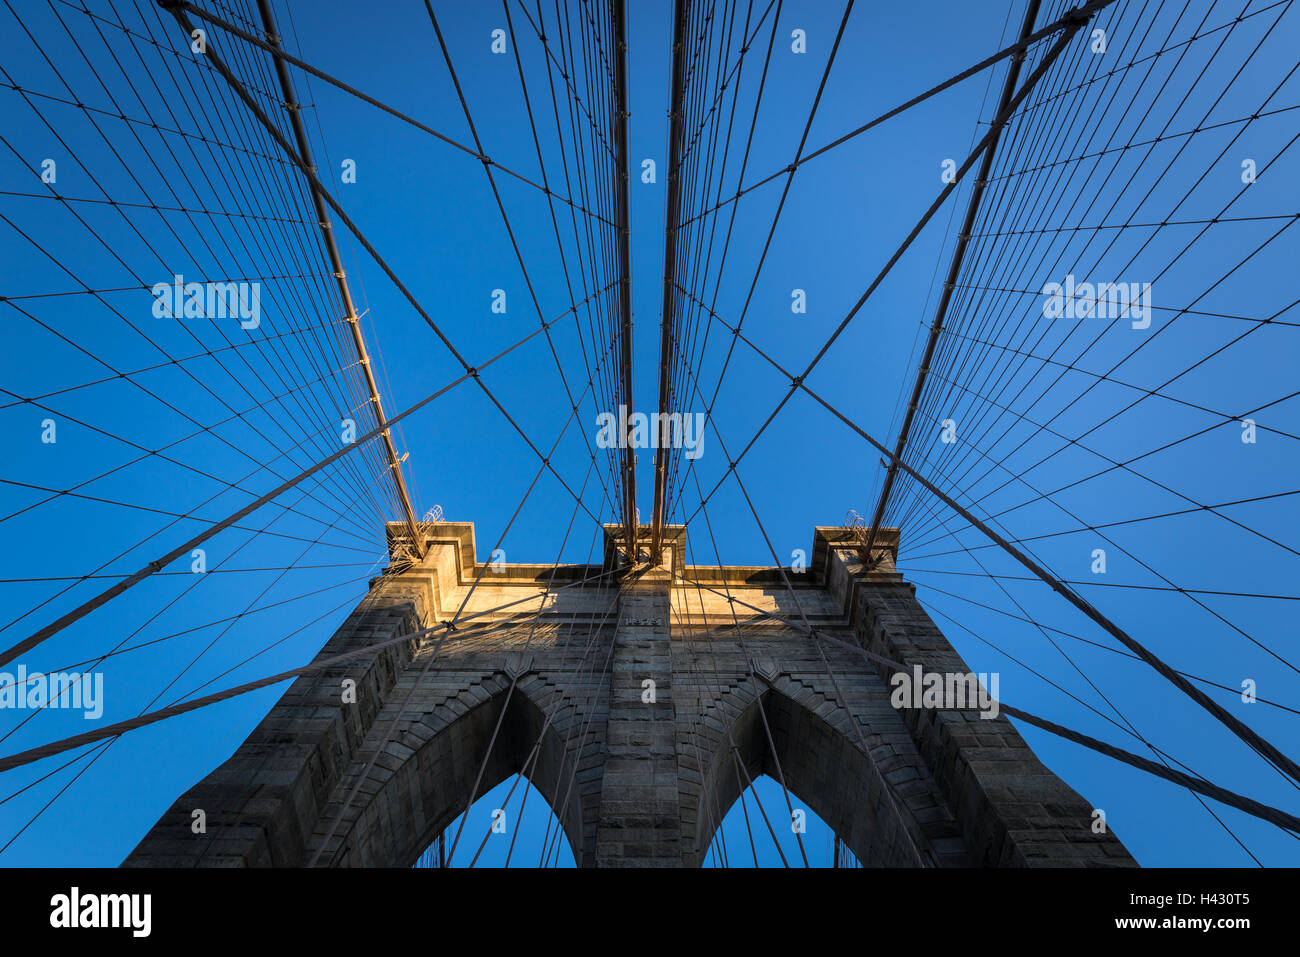 Symmetry of steel wire rope cables of the Brooklyn Bridge with a clear blue sky and last rays of sun. New York City - Stock Image